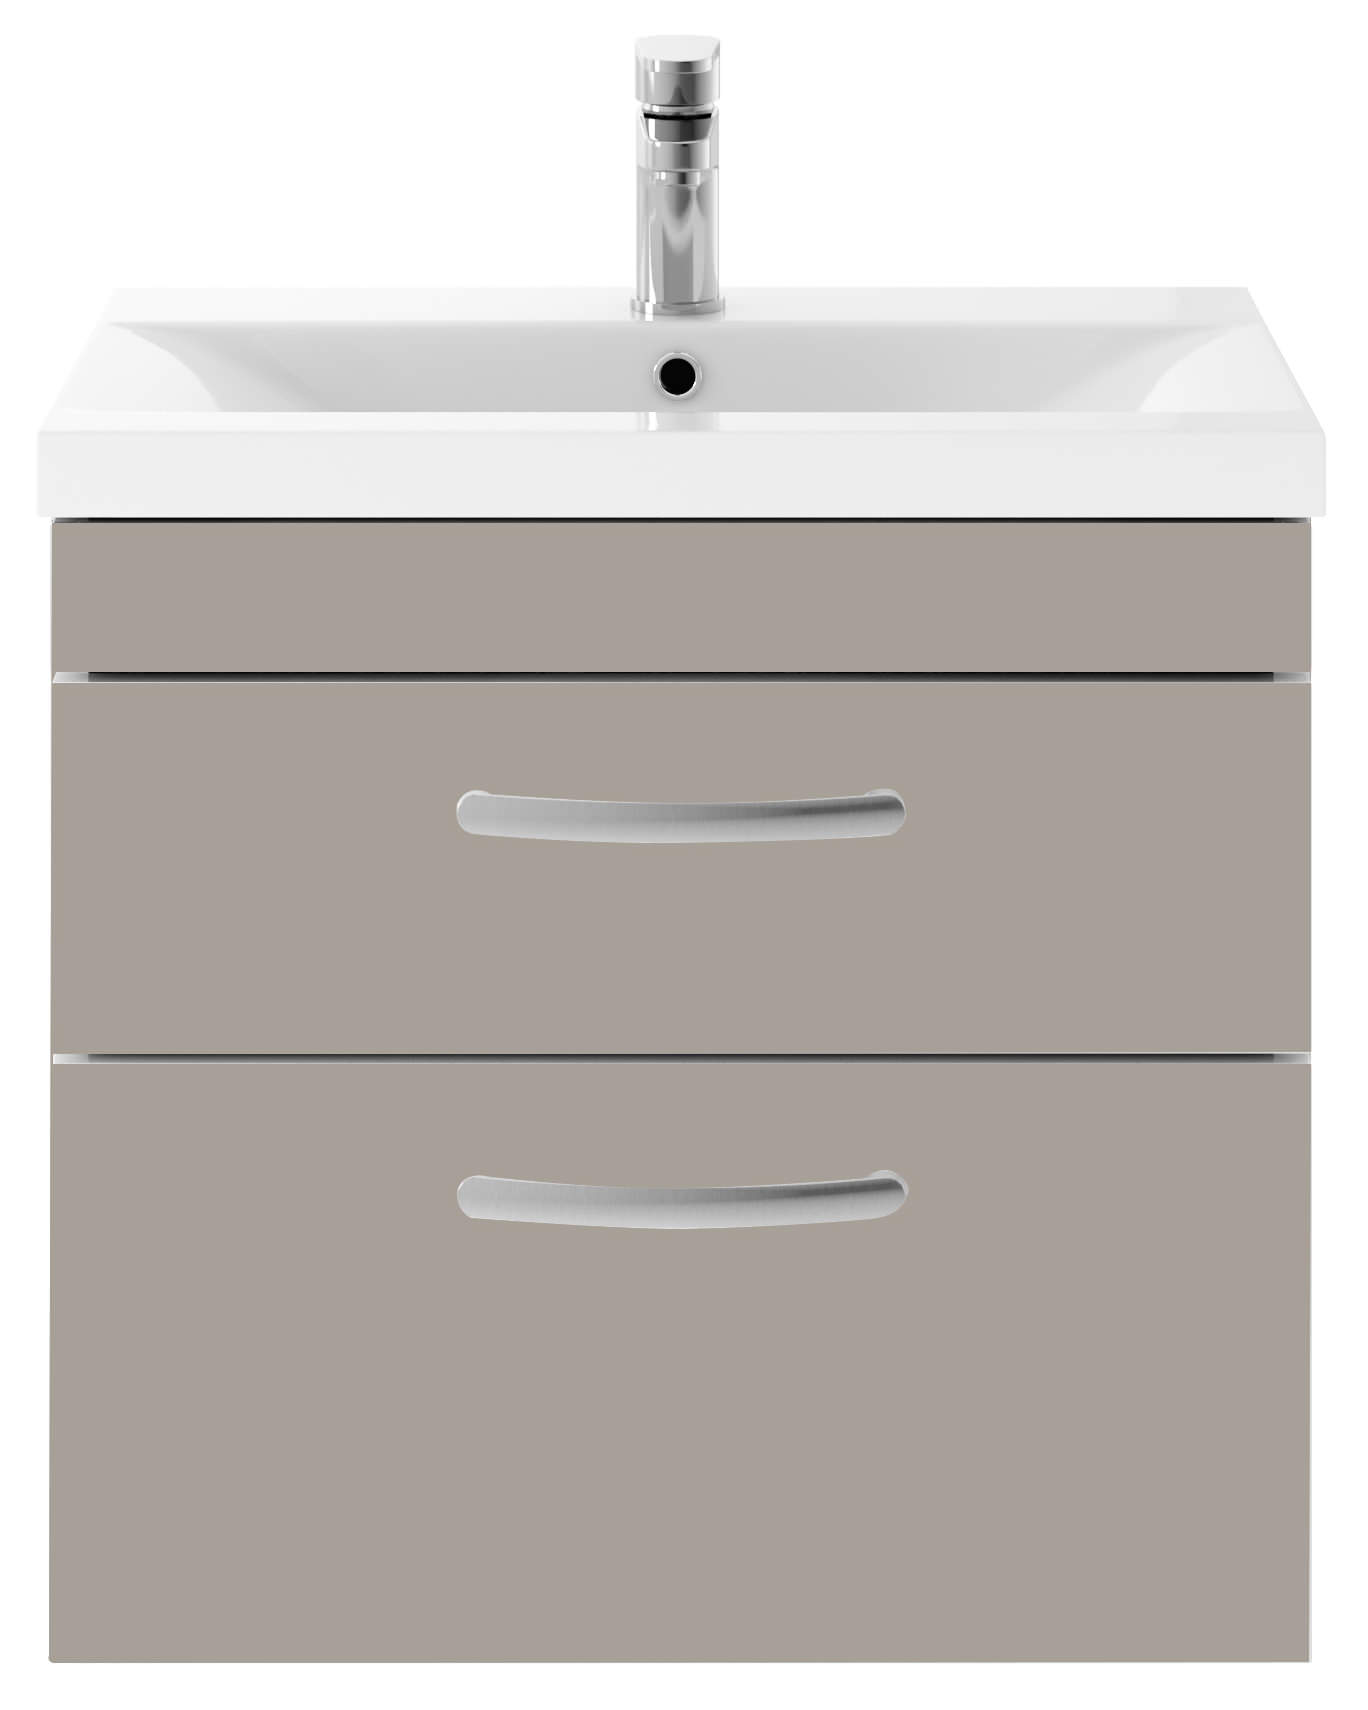 Premier Athena 600mm 2 Drawer Wall Hung Cabinet With Basin